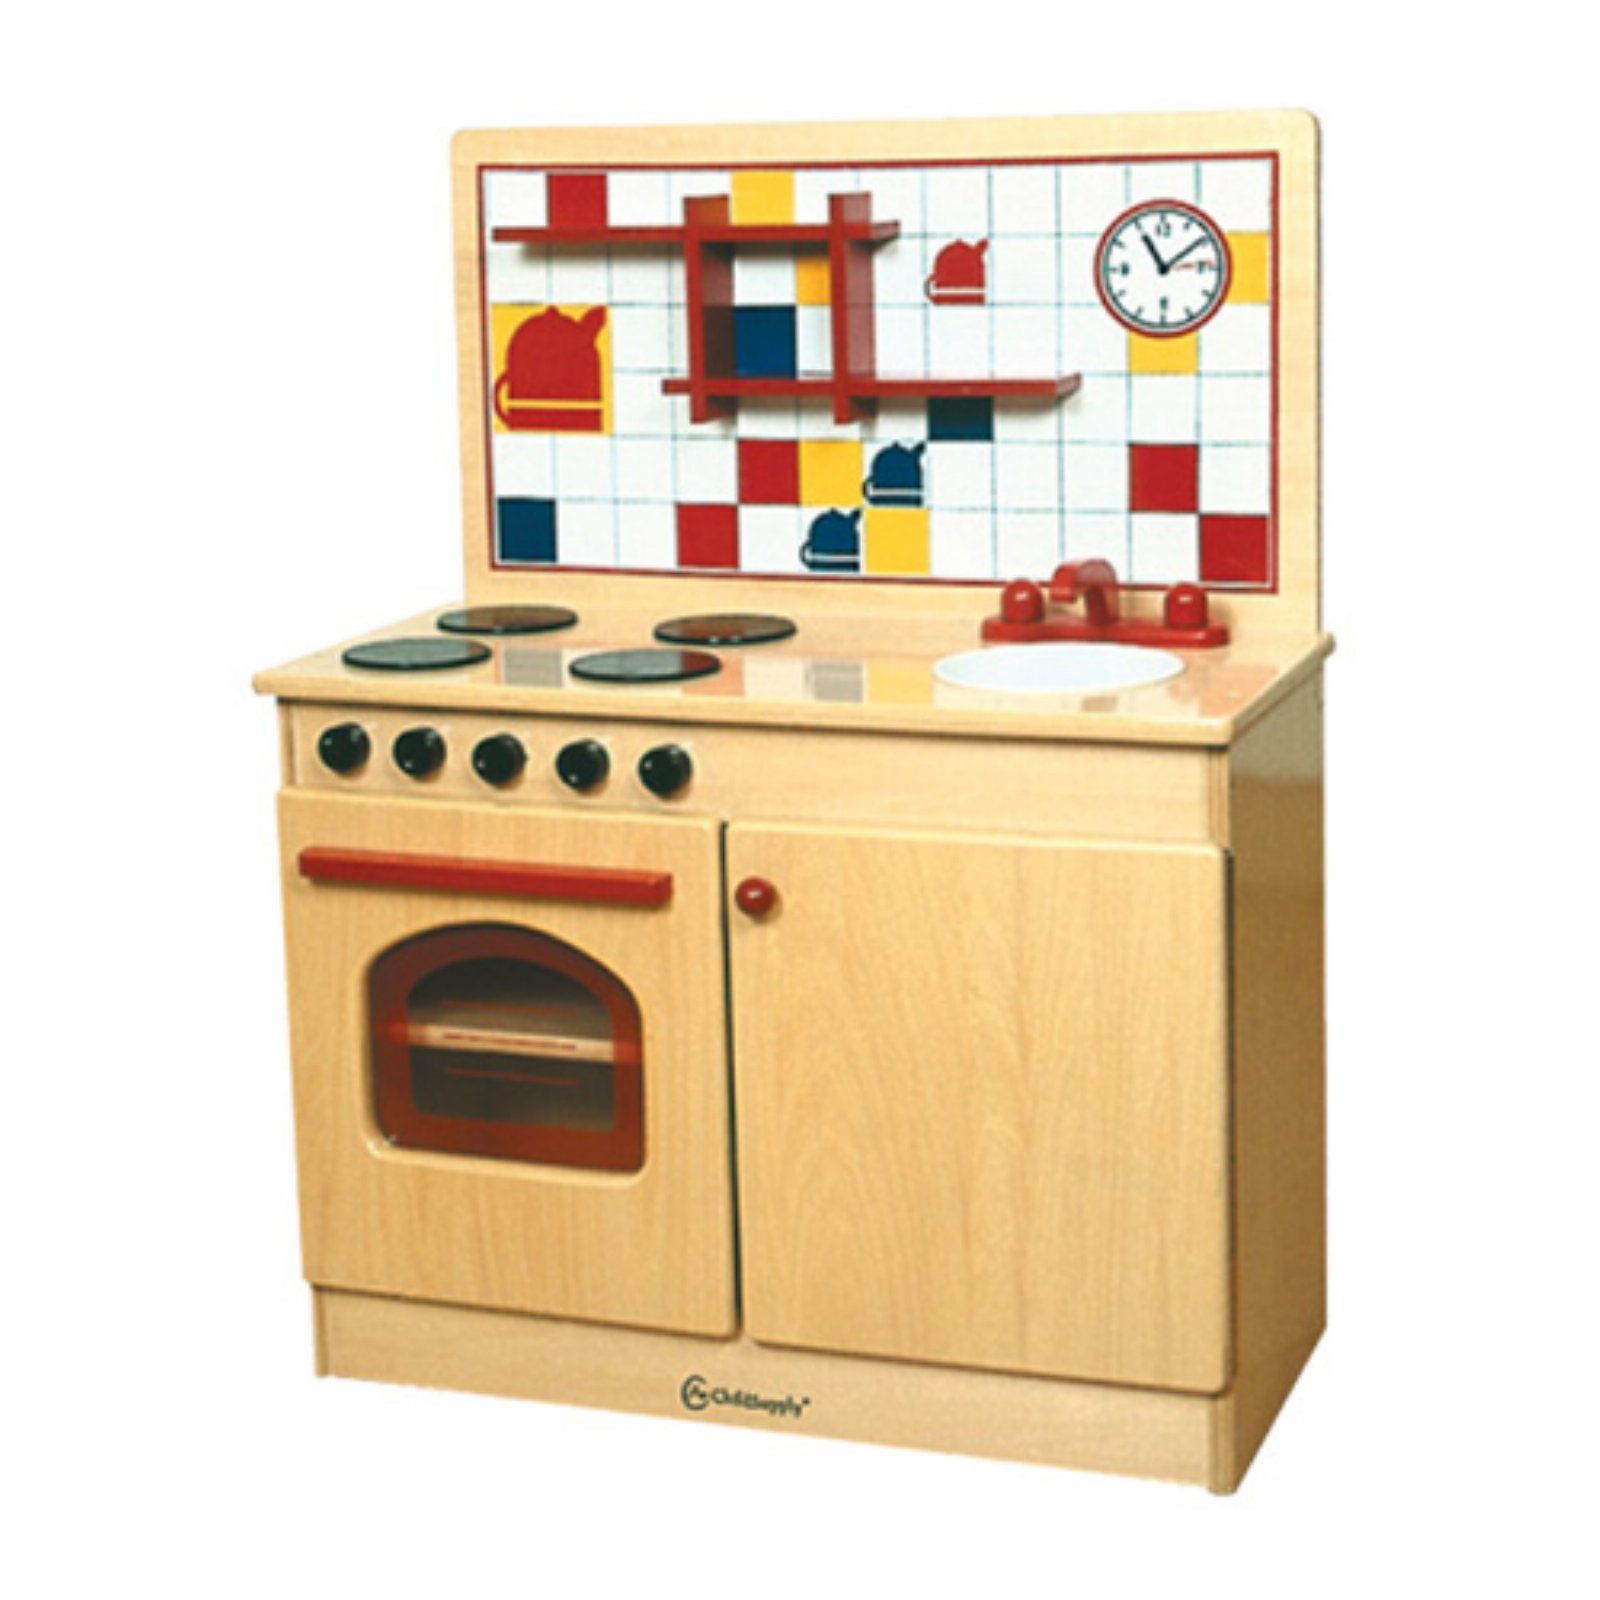 Walmart Play Kitchens For Toddlers: A+ Childsupply Toddler 3 In 1 Play Kitchen